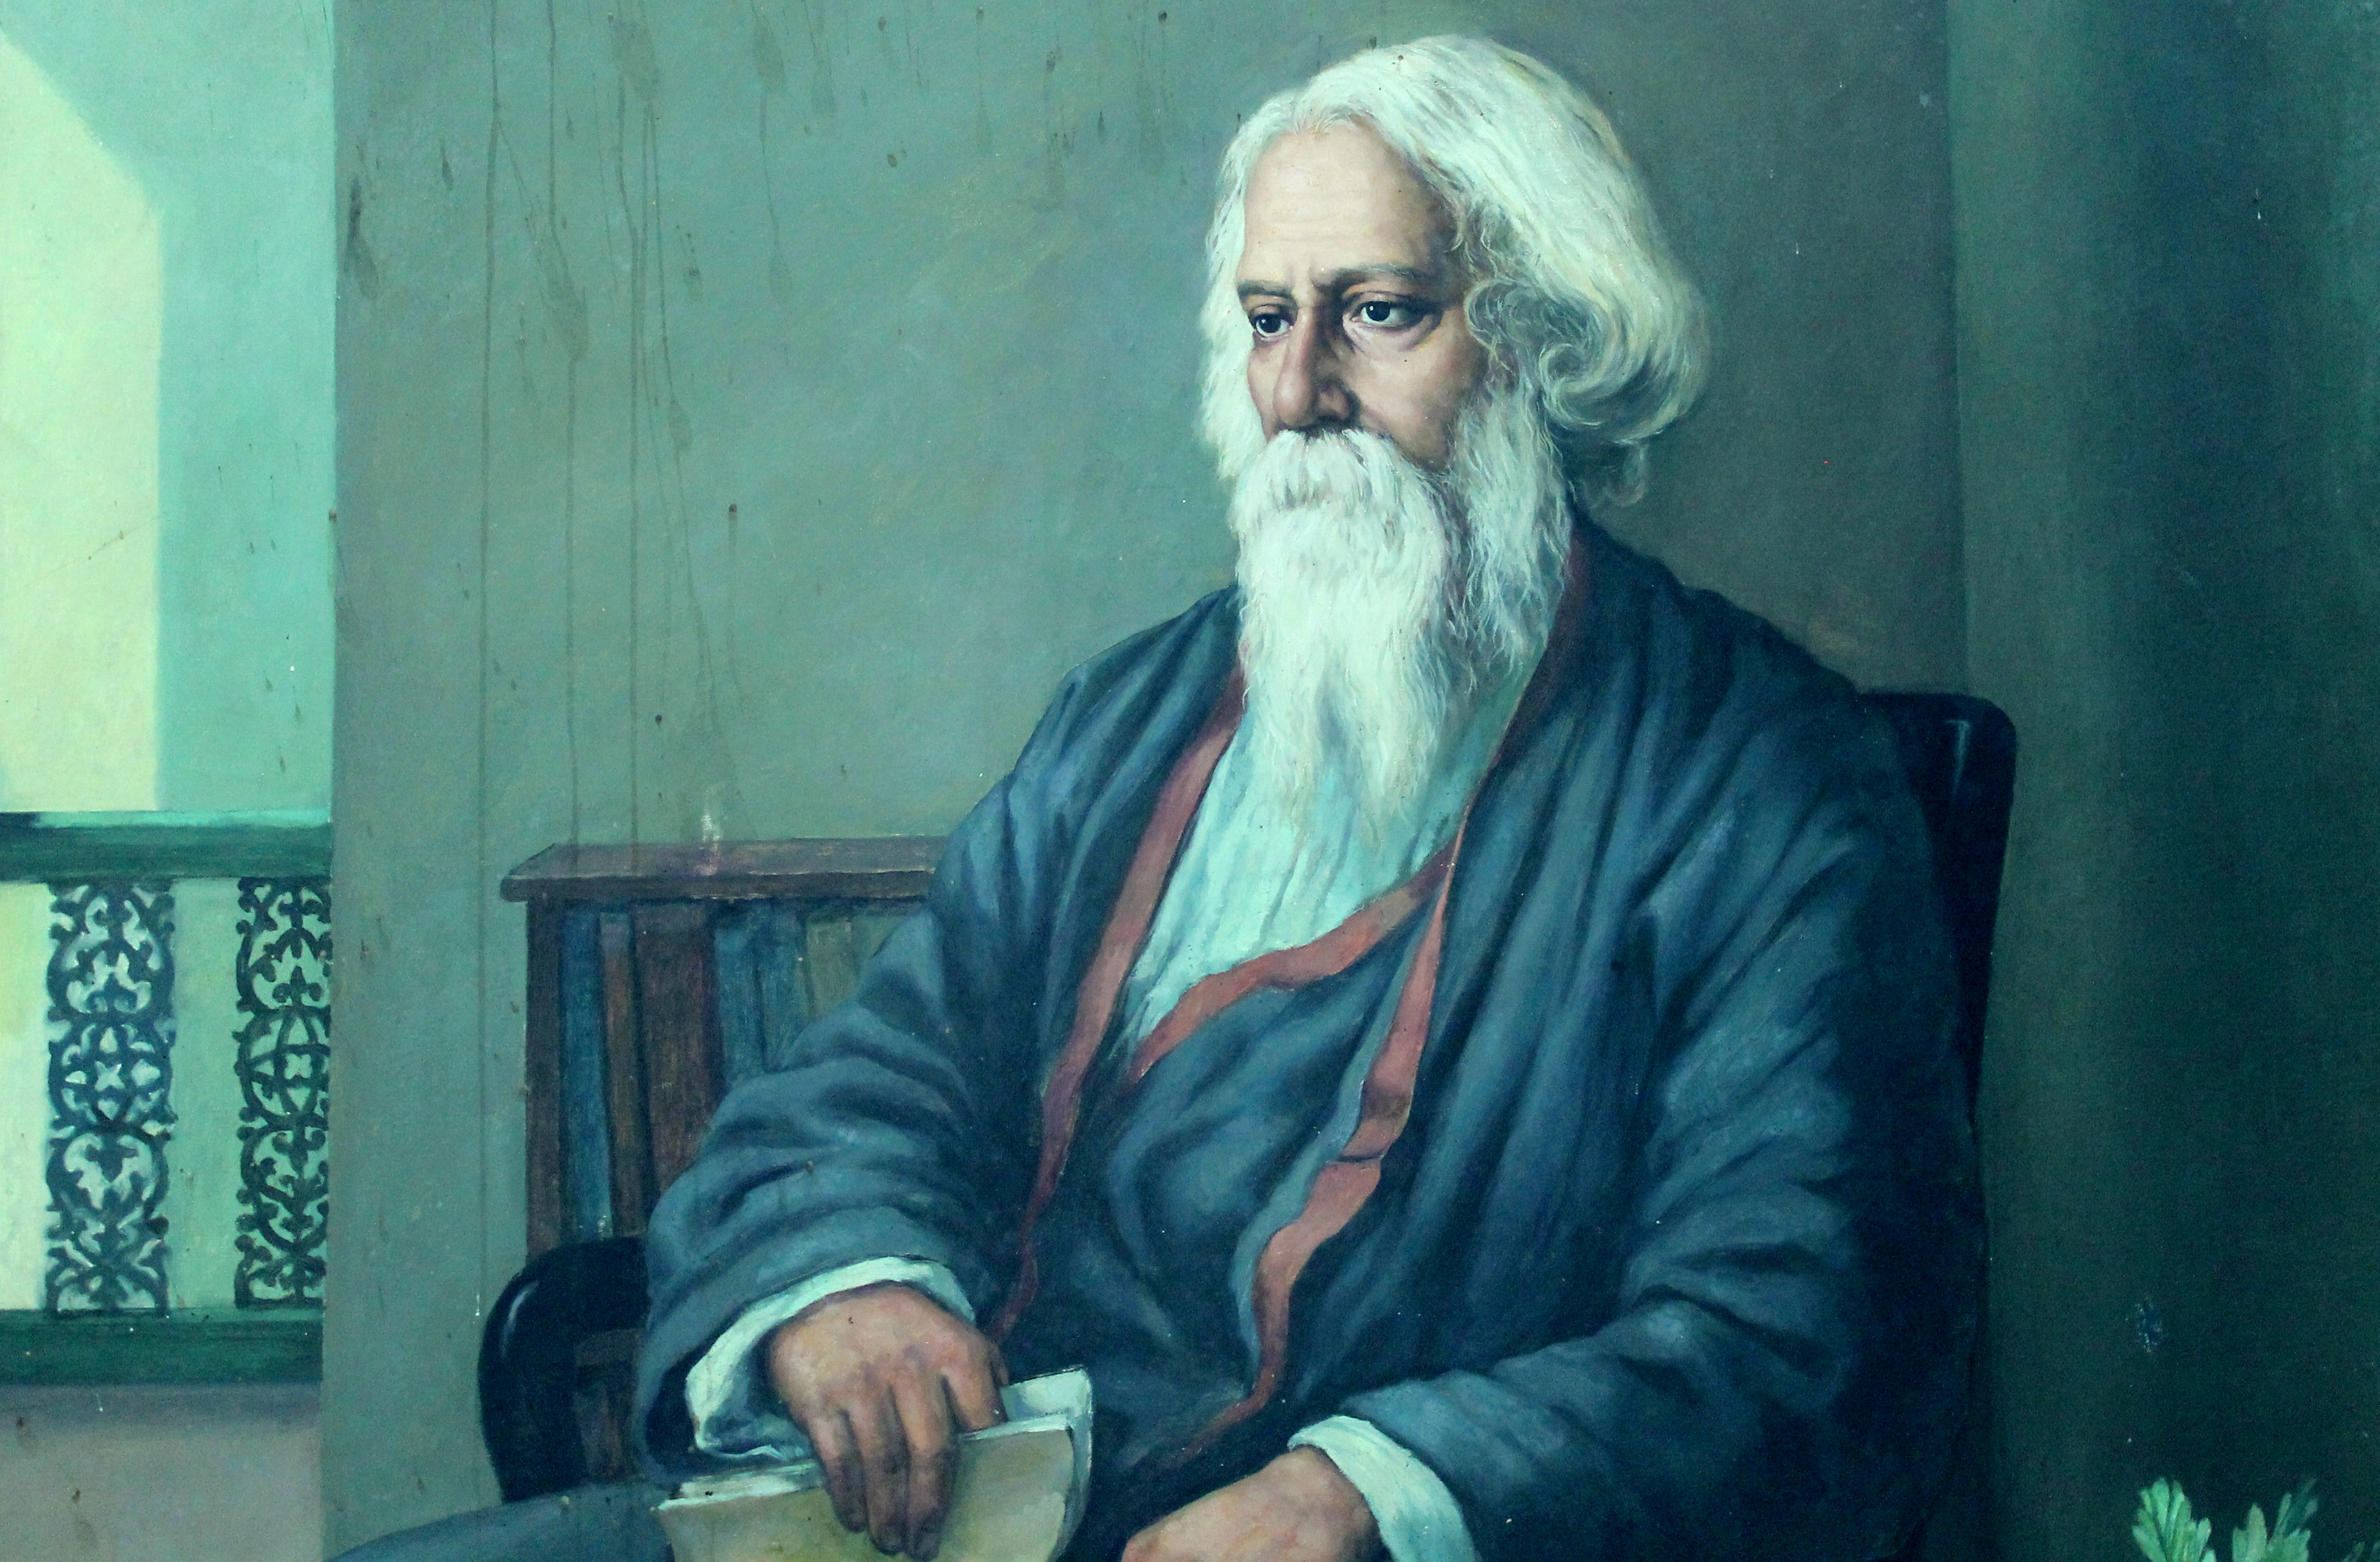 essay on rabindranath tagore smaraka grantha example of  essay on the rabindranath tagore the voice of the east